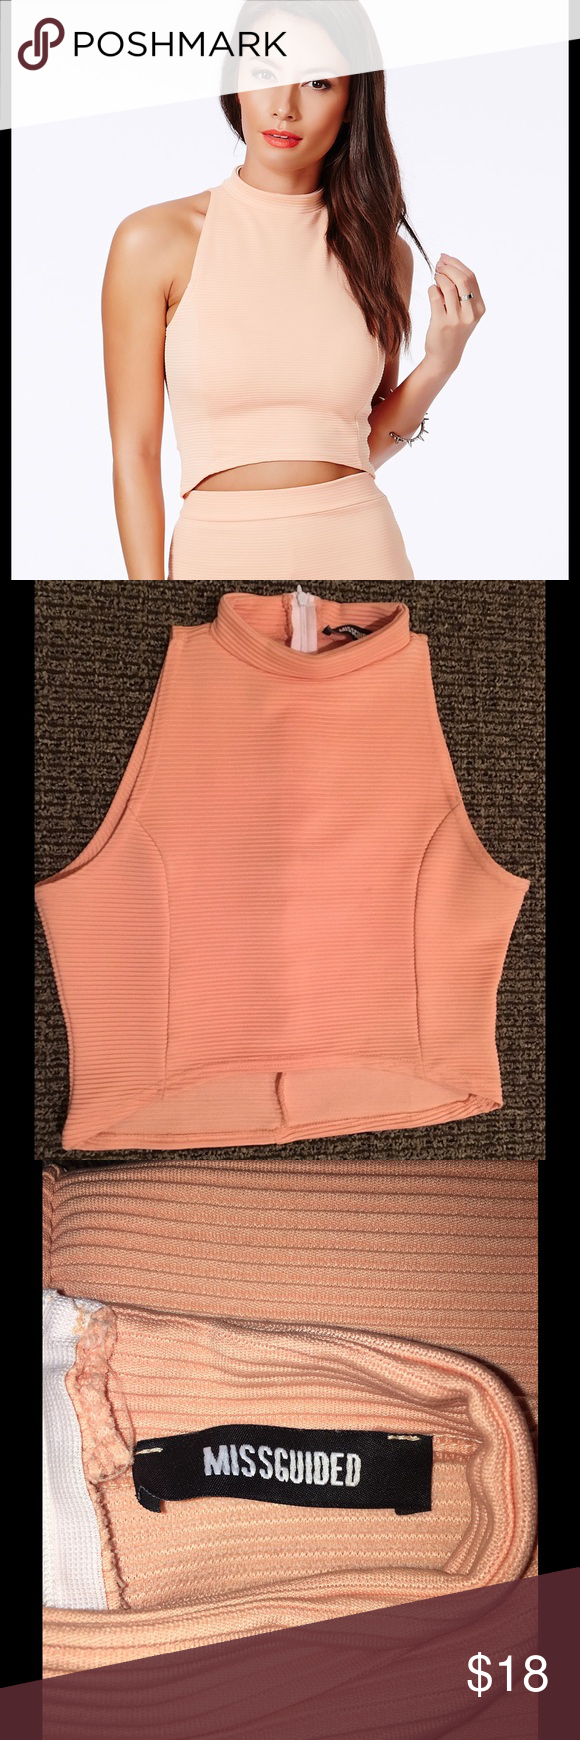 MISSGUIDED Salmon Peach High Neck Crop Top Size 8